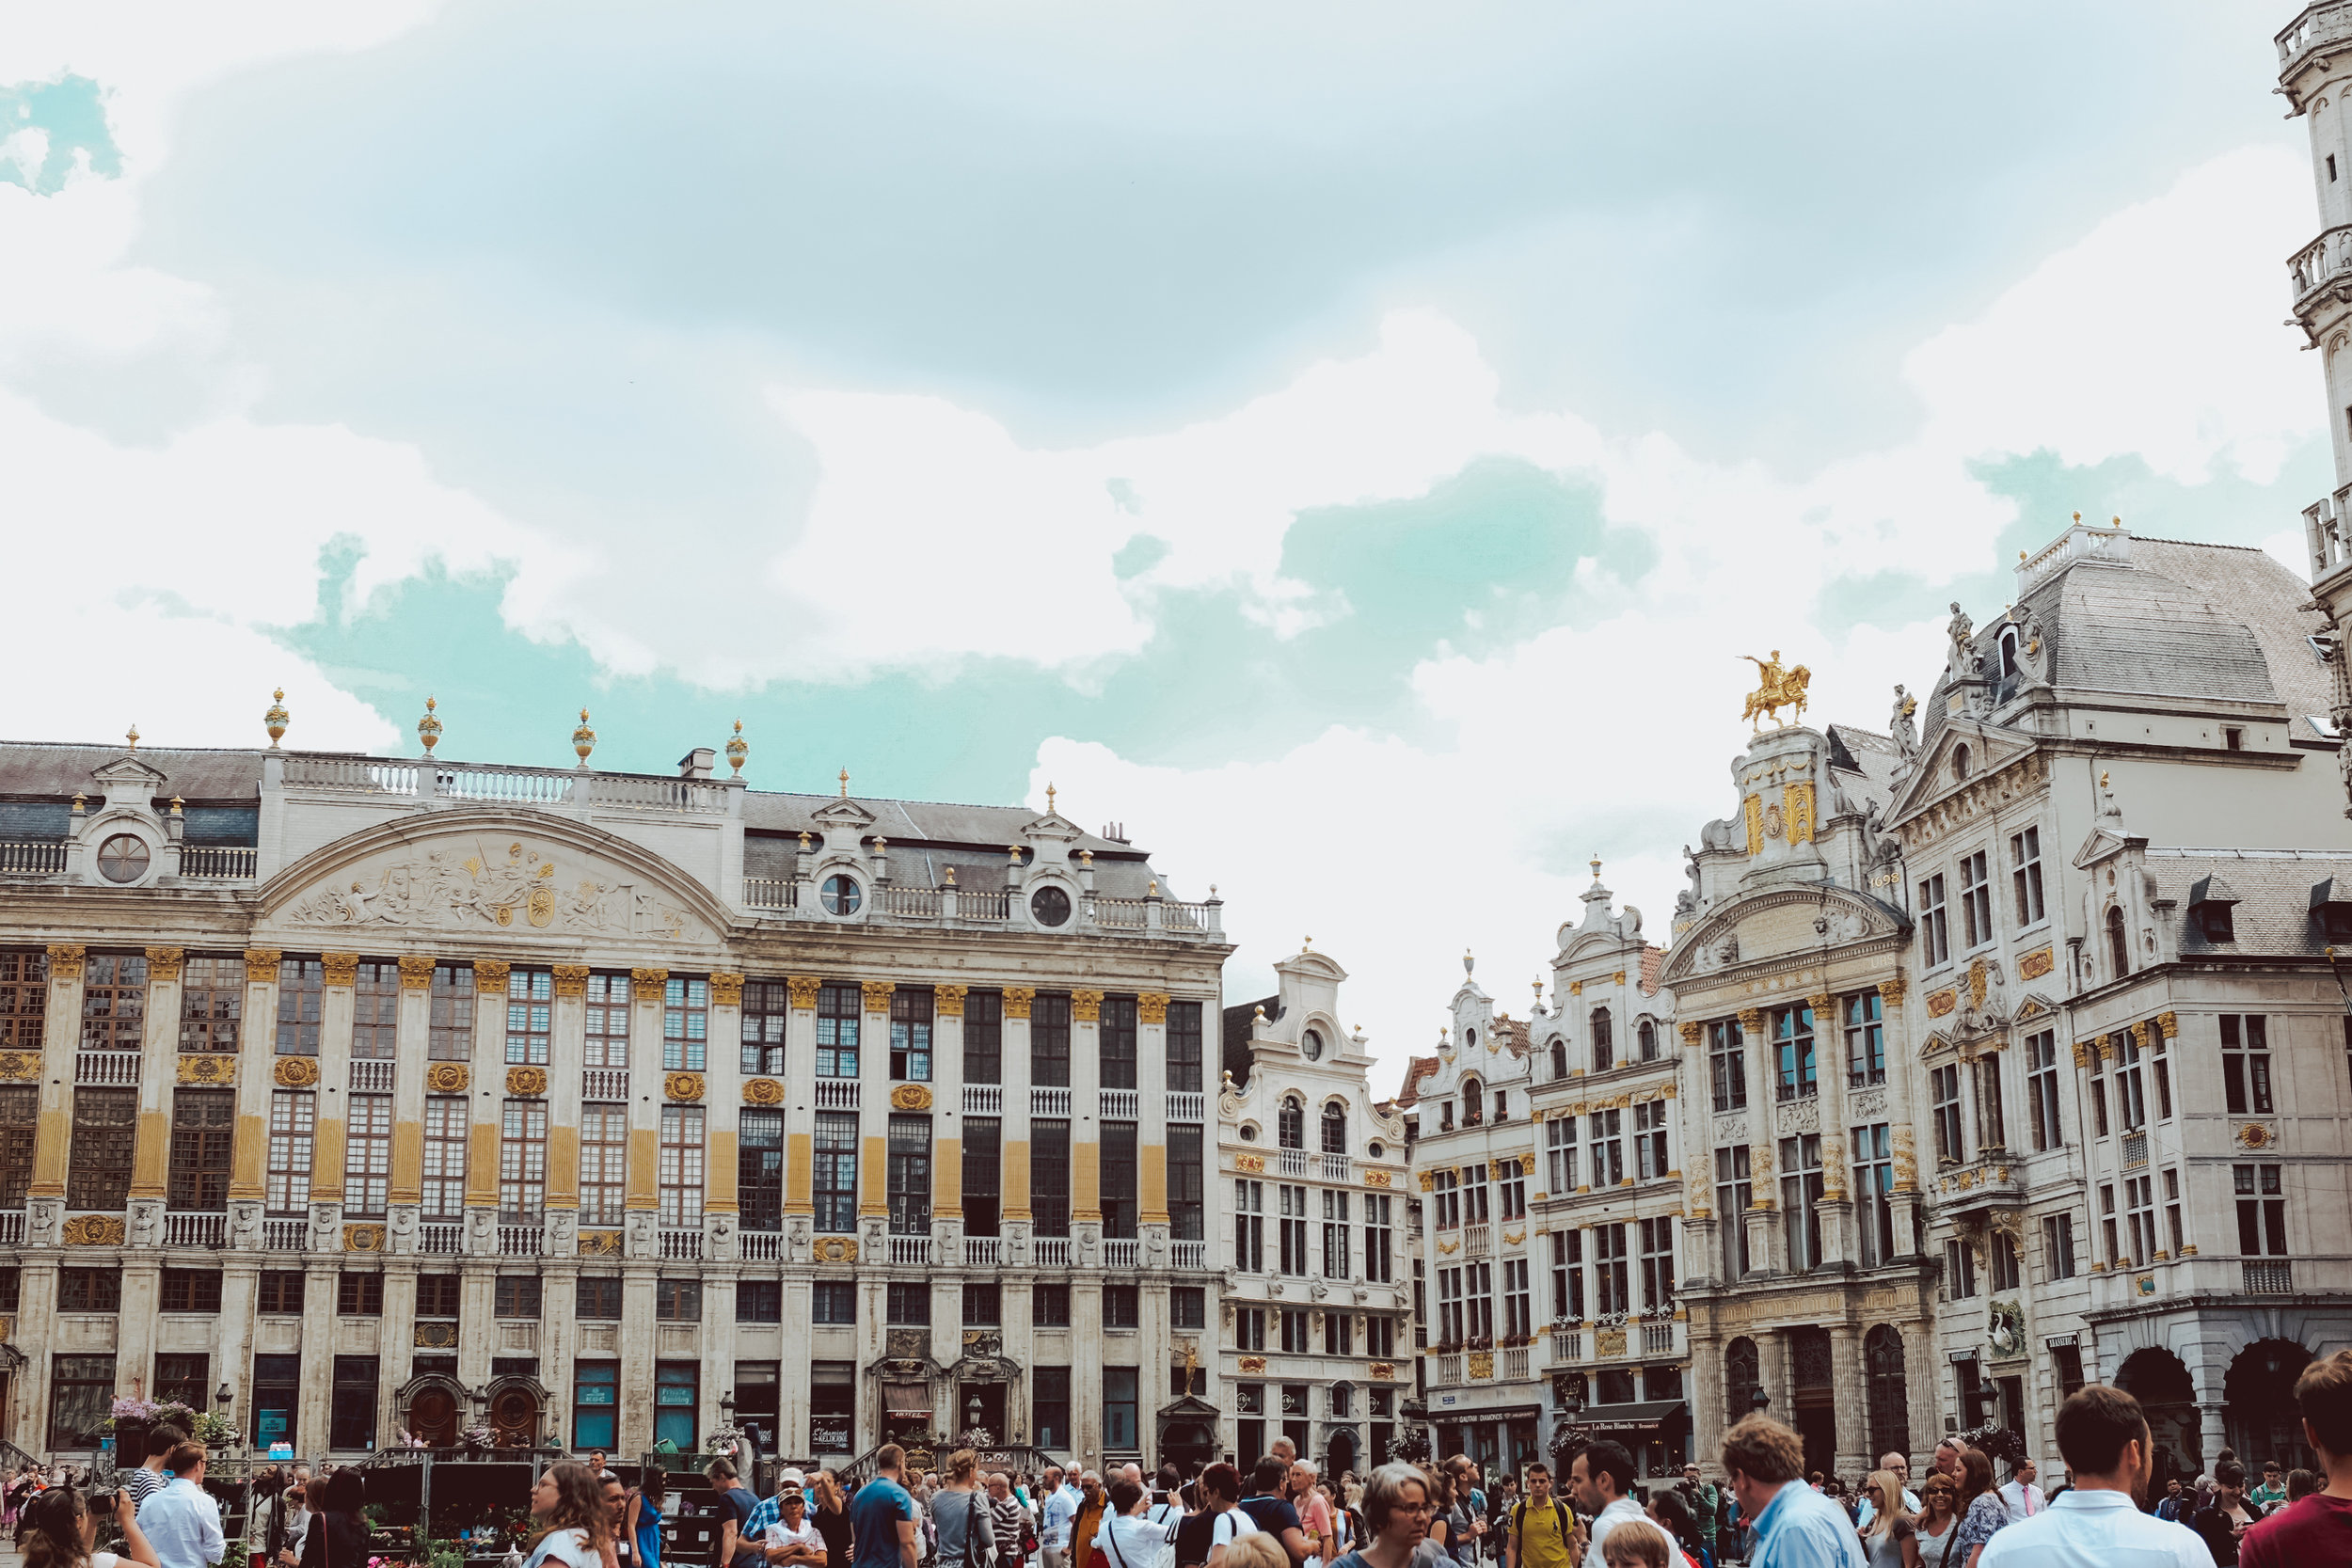 Grand Palace - One day in Brussels Belgiun - A first timer guide to the Belgium capital